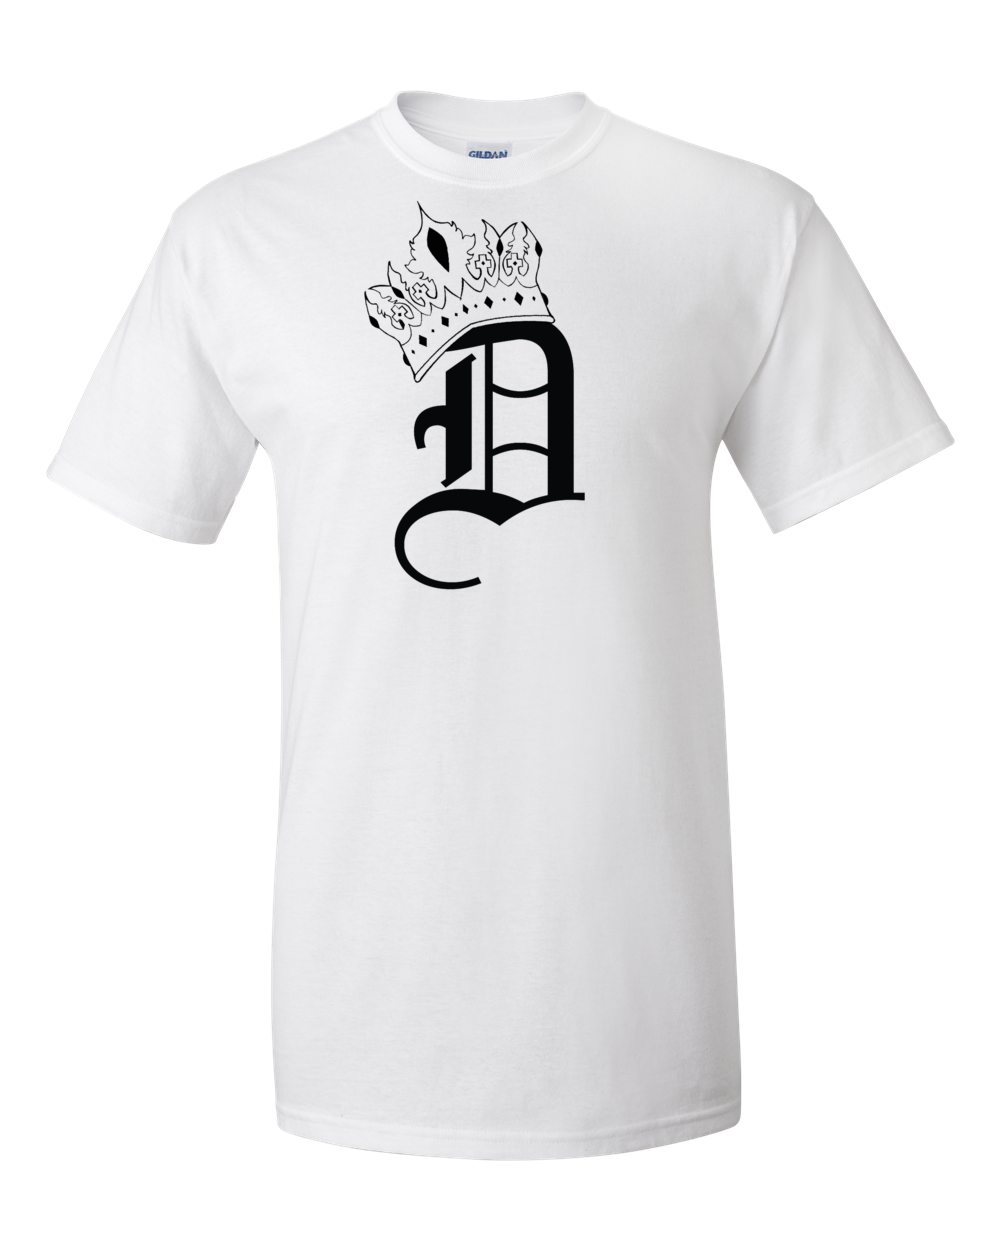 Men's White with Black Logo T-Shirt